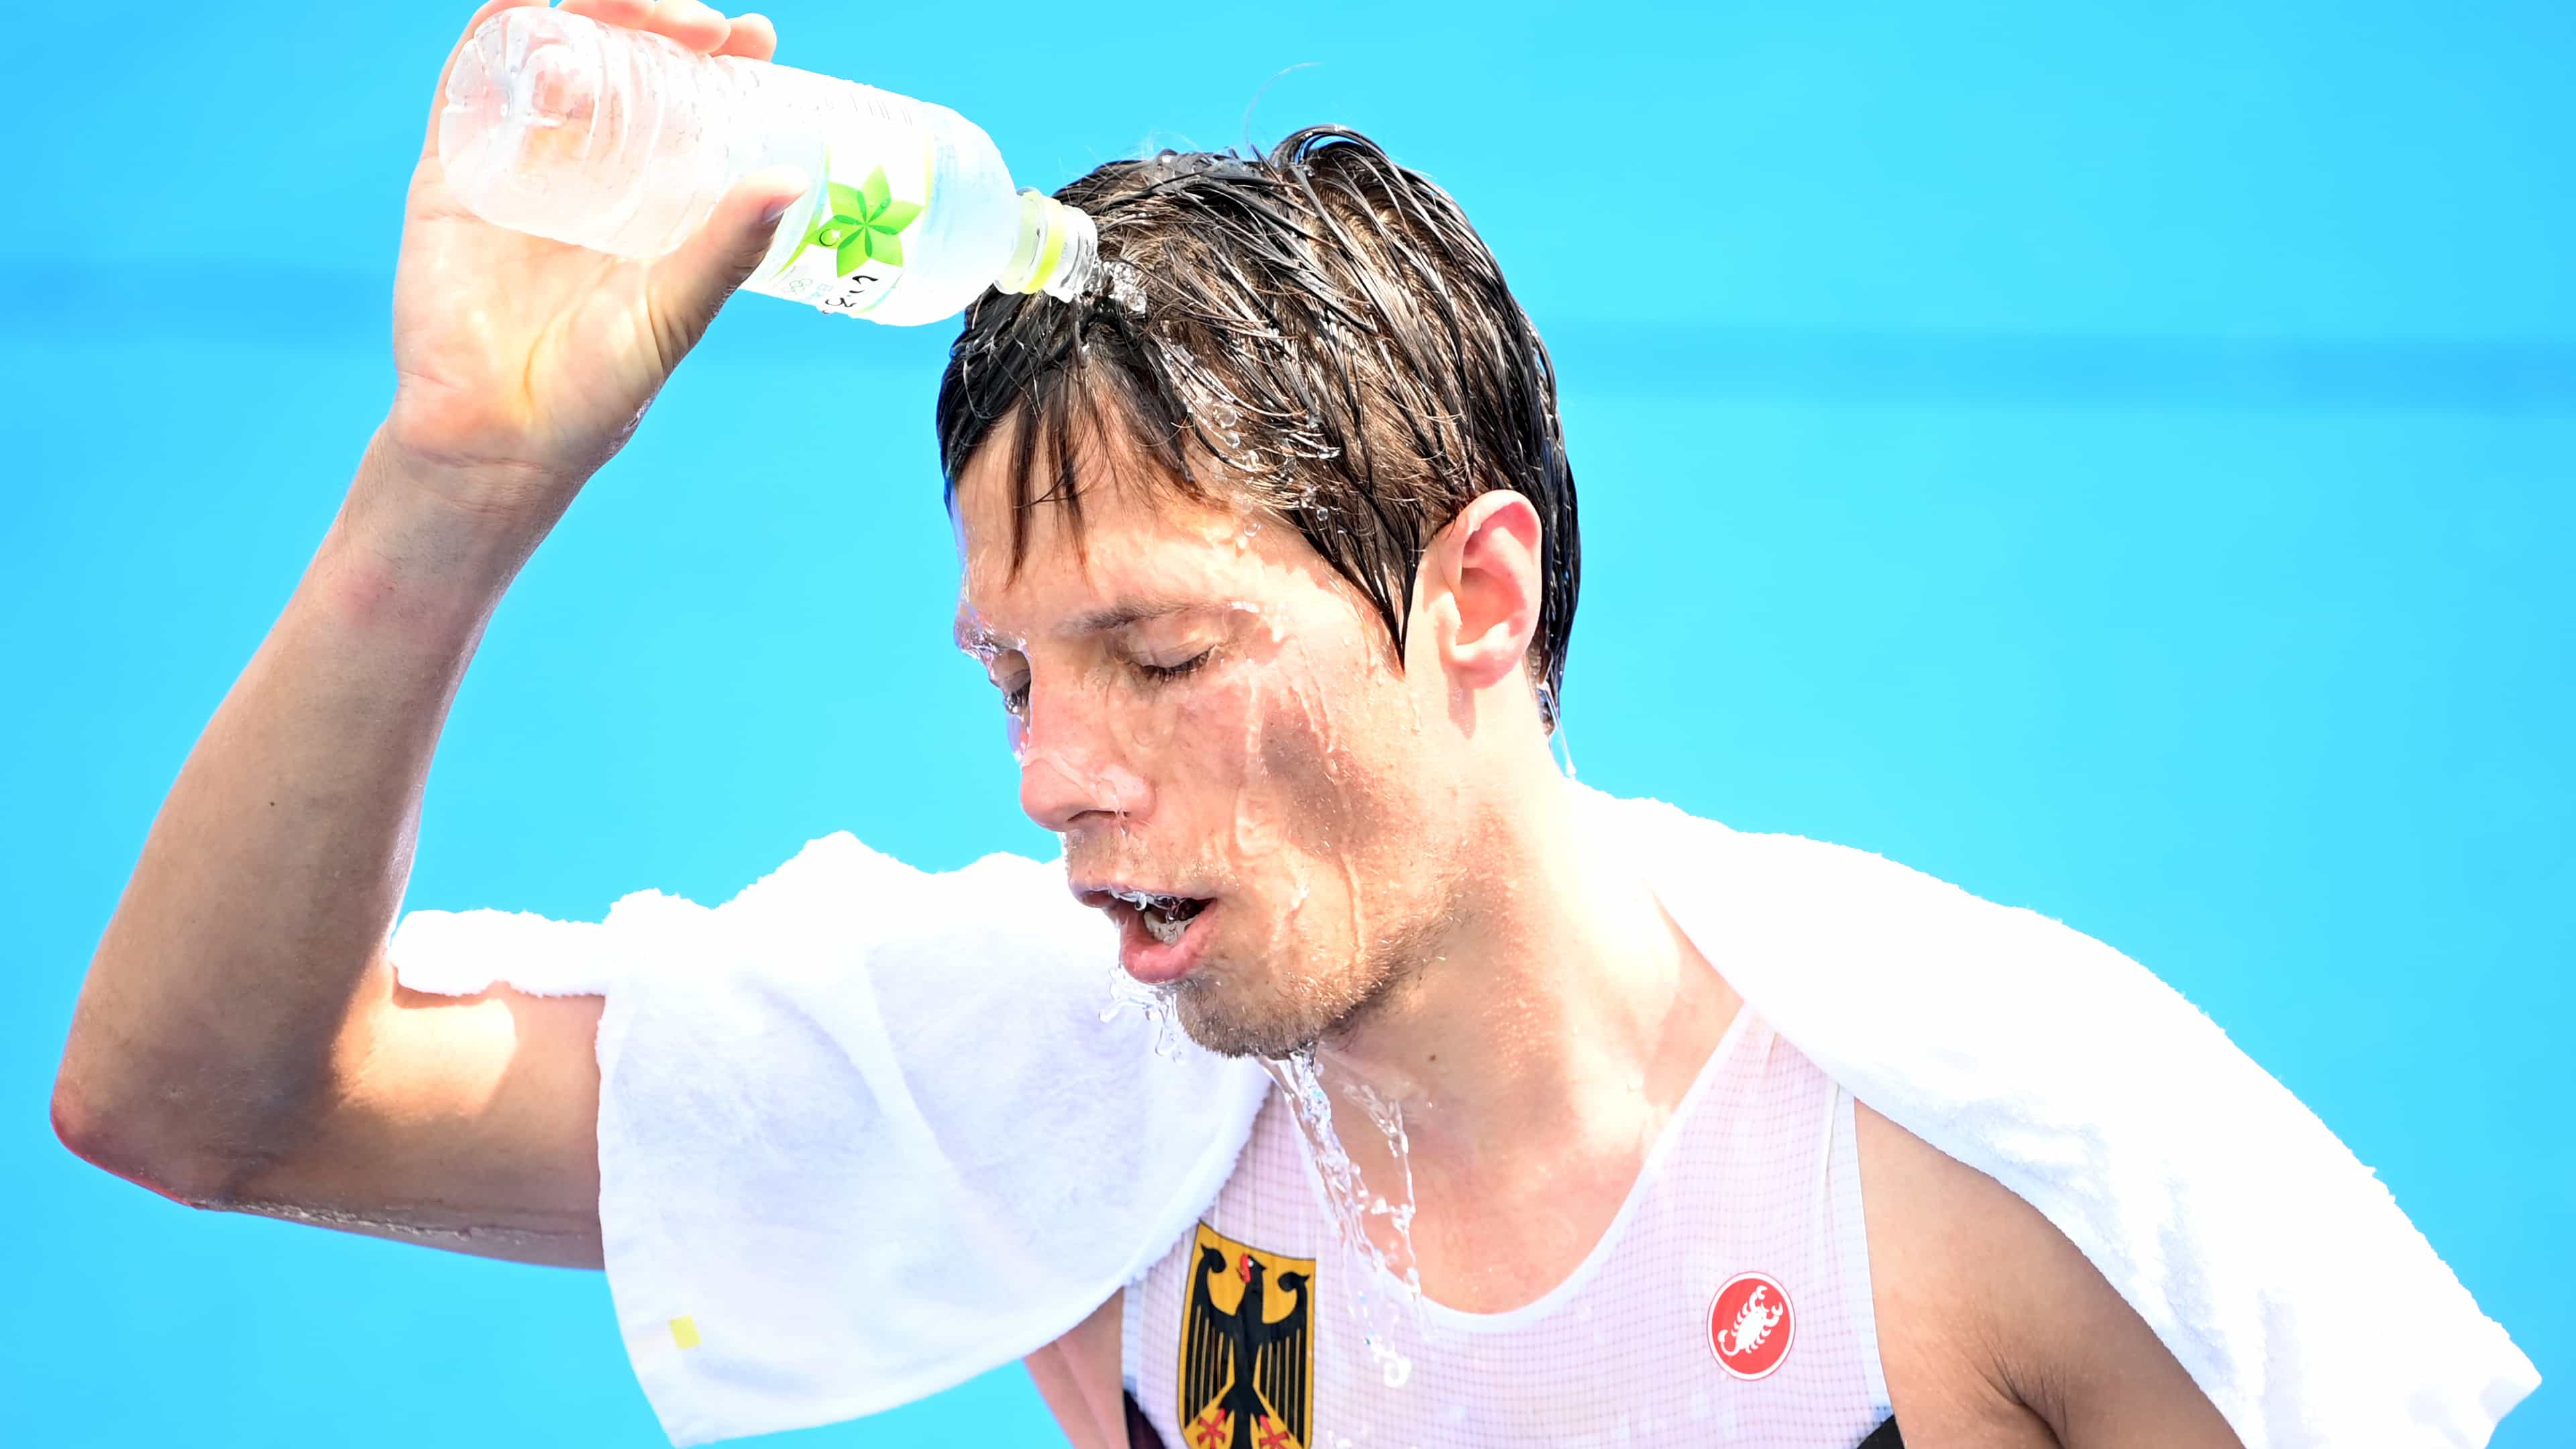 Justus Nieschlag from Germany cools off after the Olympic triathlon in Tokyo. (credit: Getty...